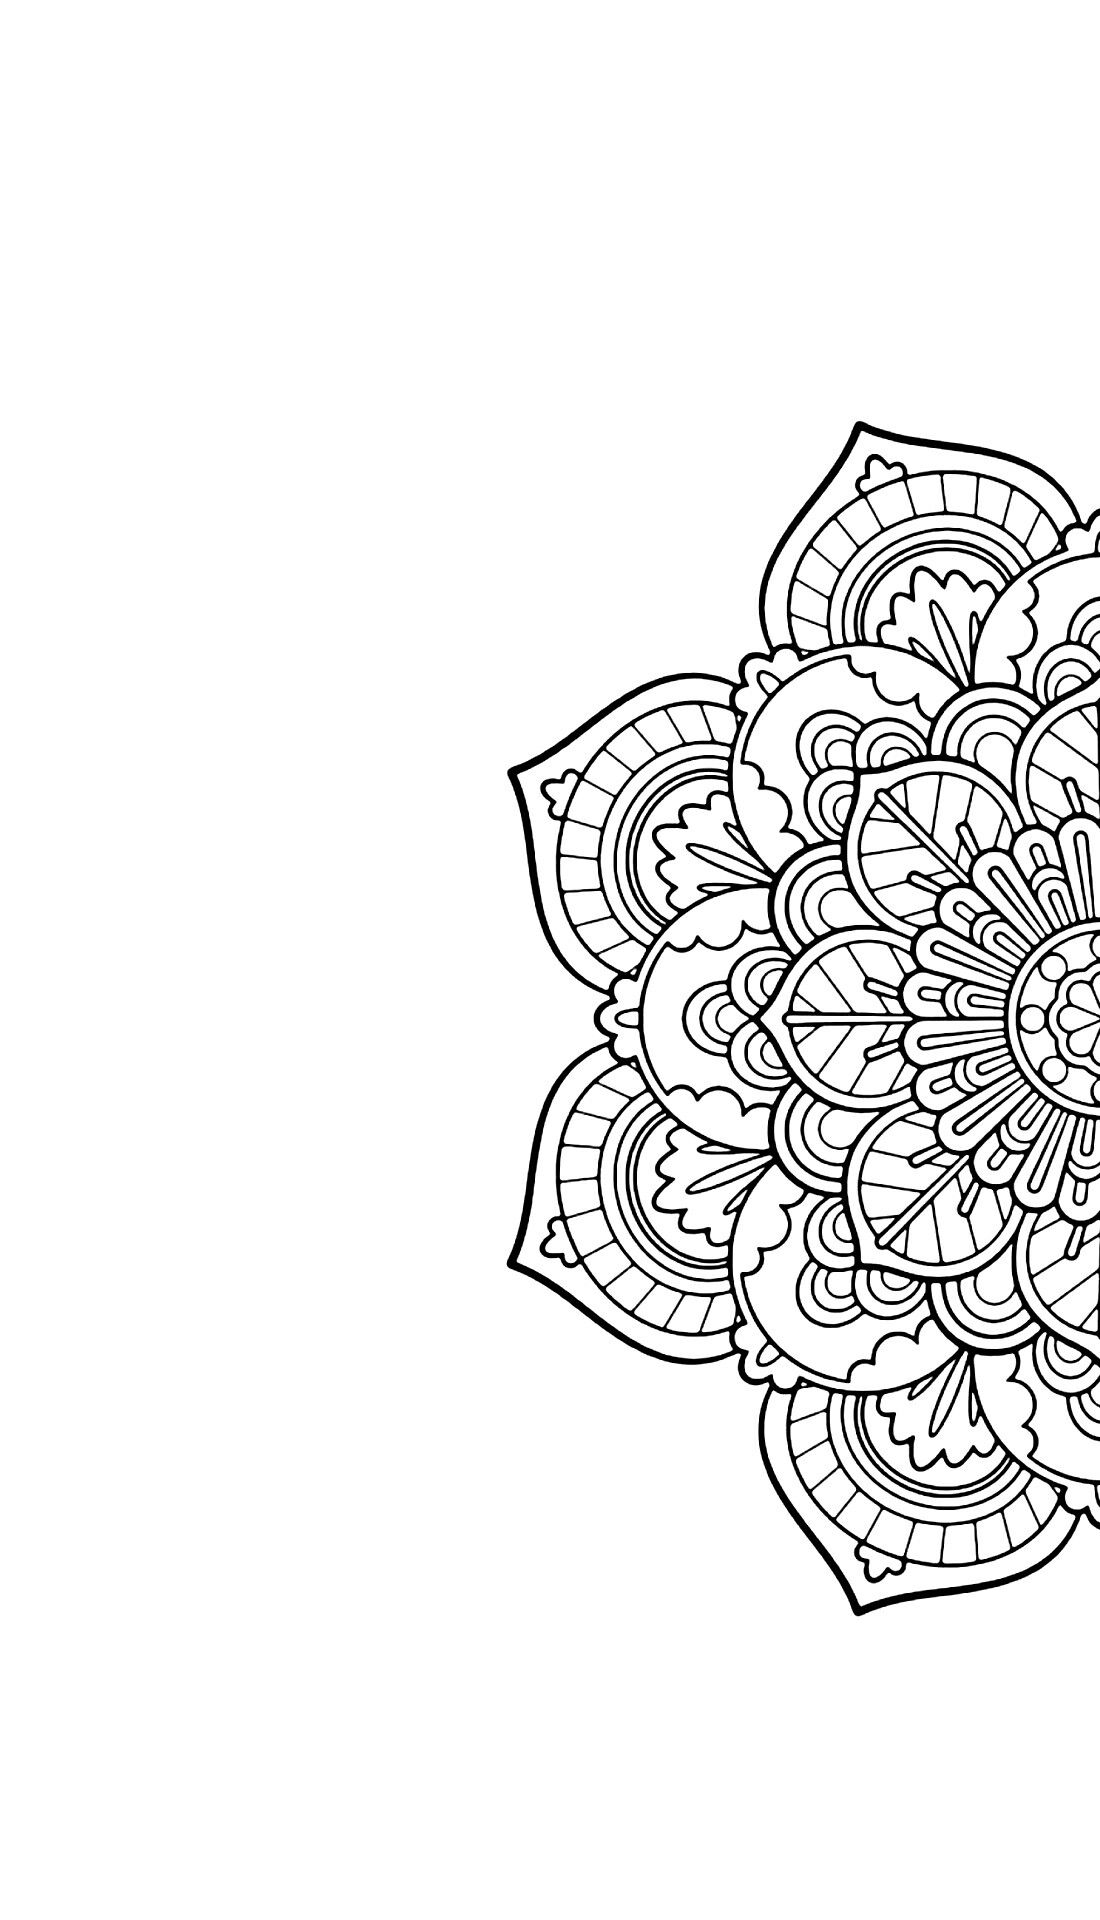 Good Wallpaper Marble Mandala - 8af7eabf434f2904368781f07574d568  You Should Have_807115.jpg